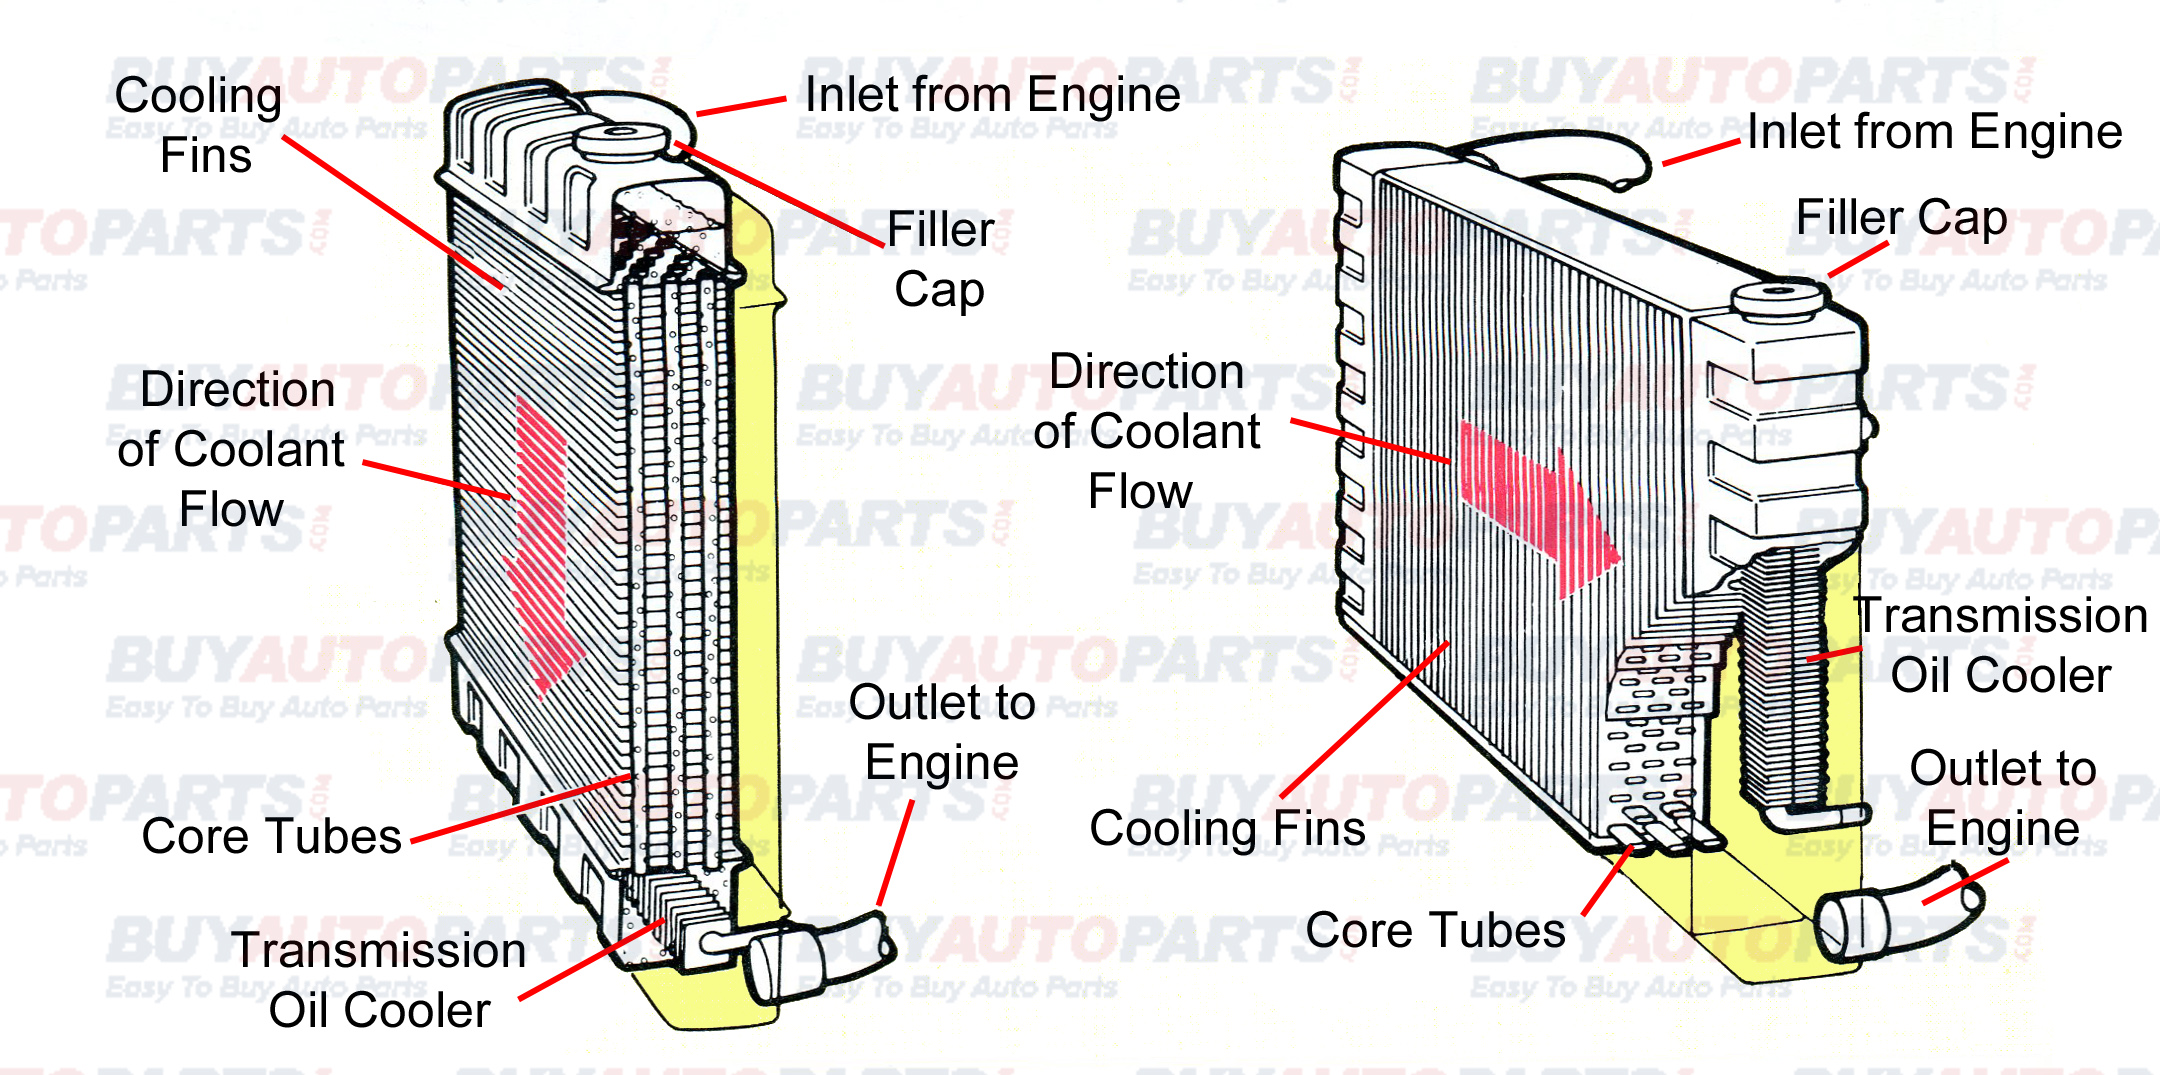 radiator break down diagrams rh buyautoparts com auto parts diagram auto parts diagrams free